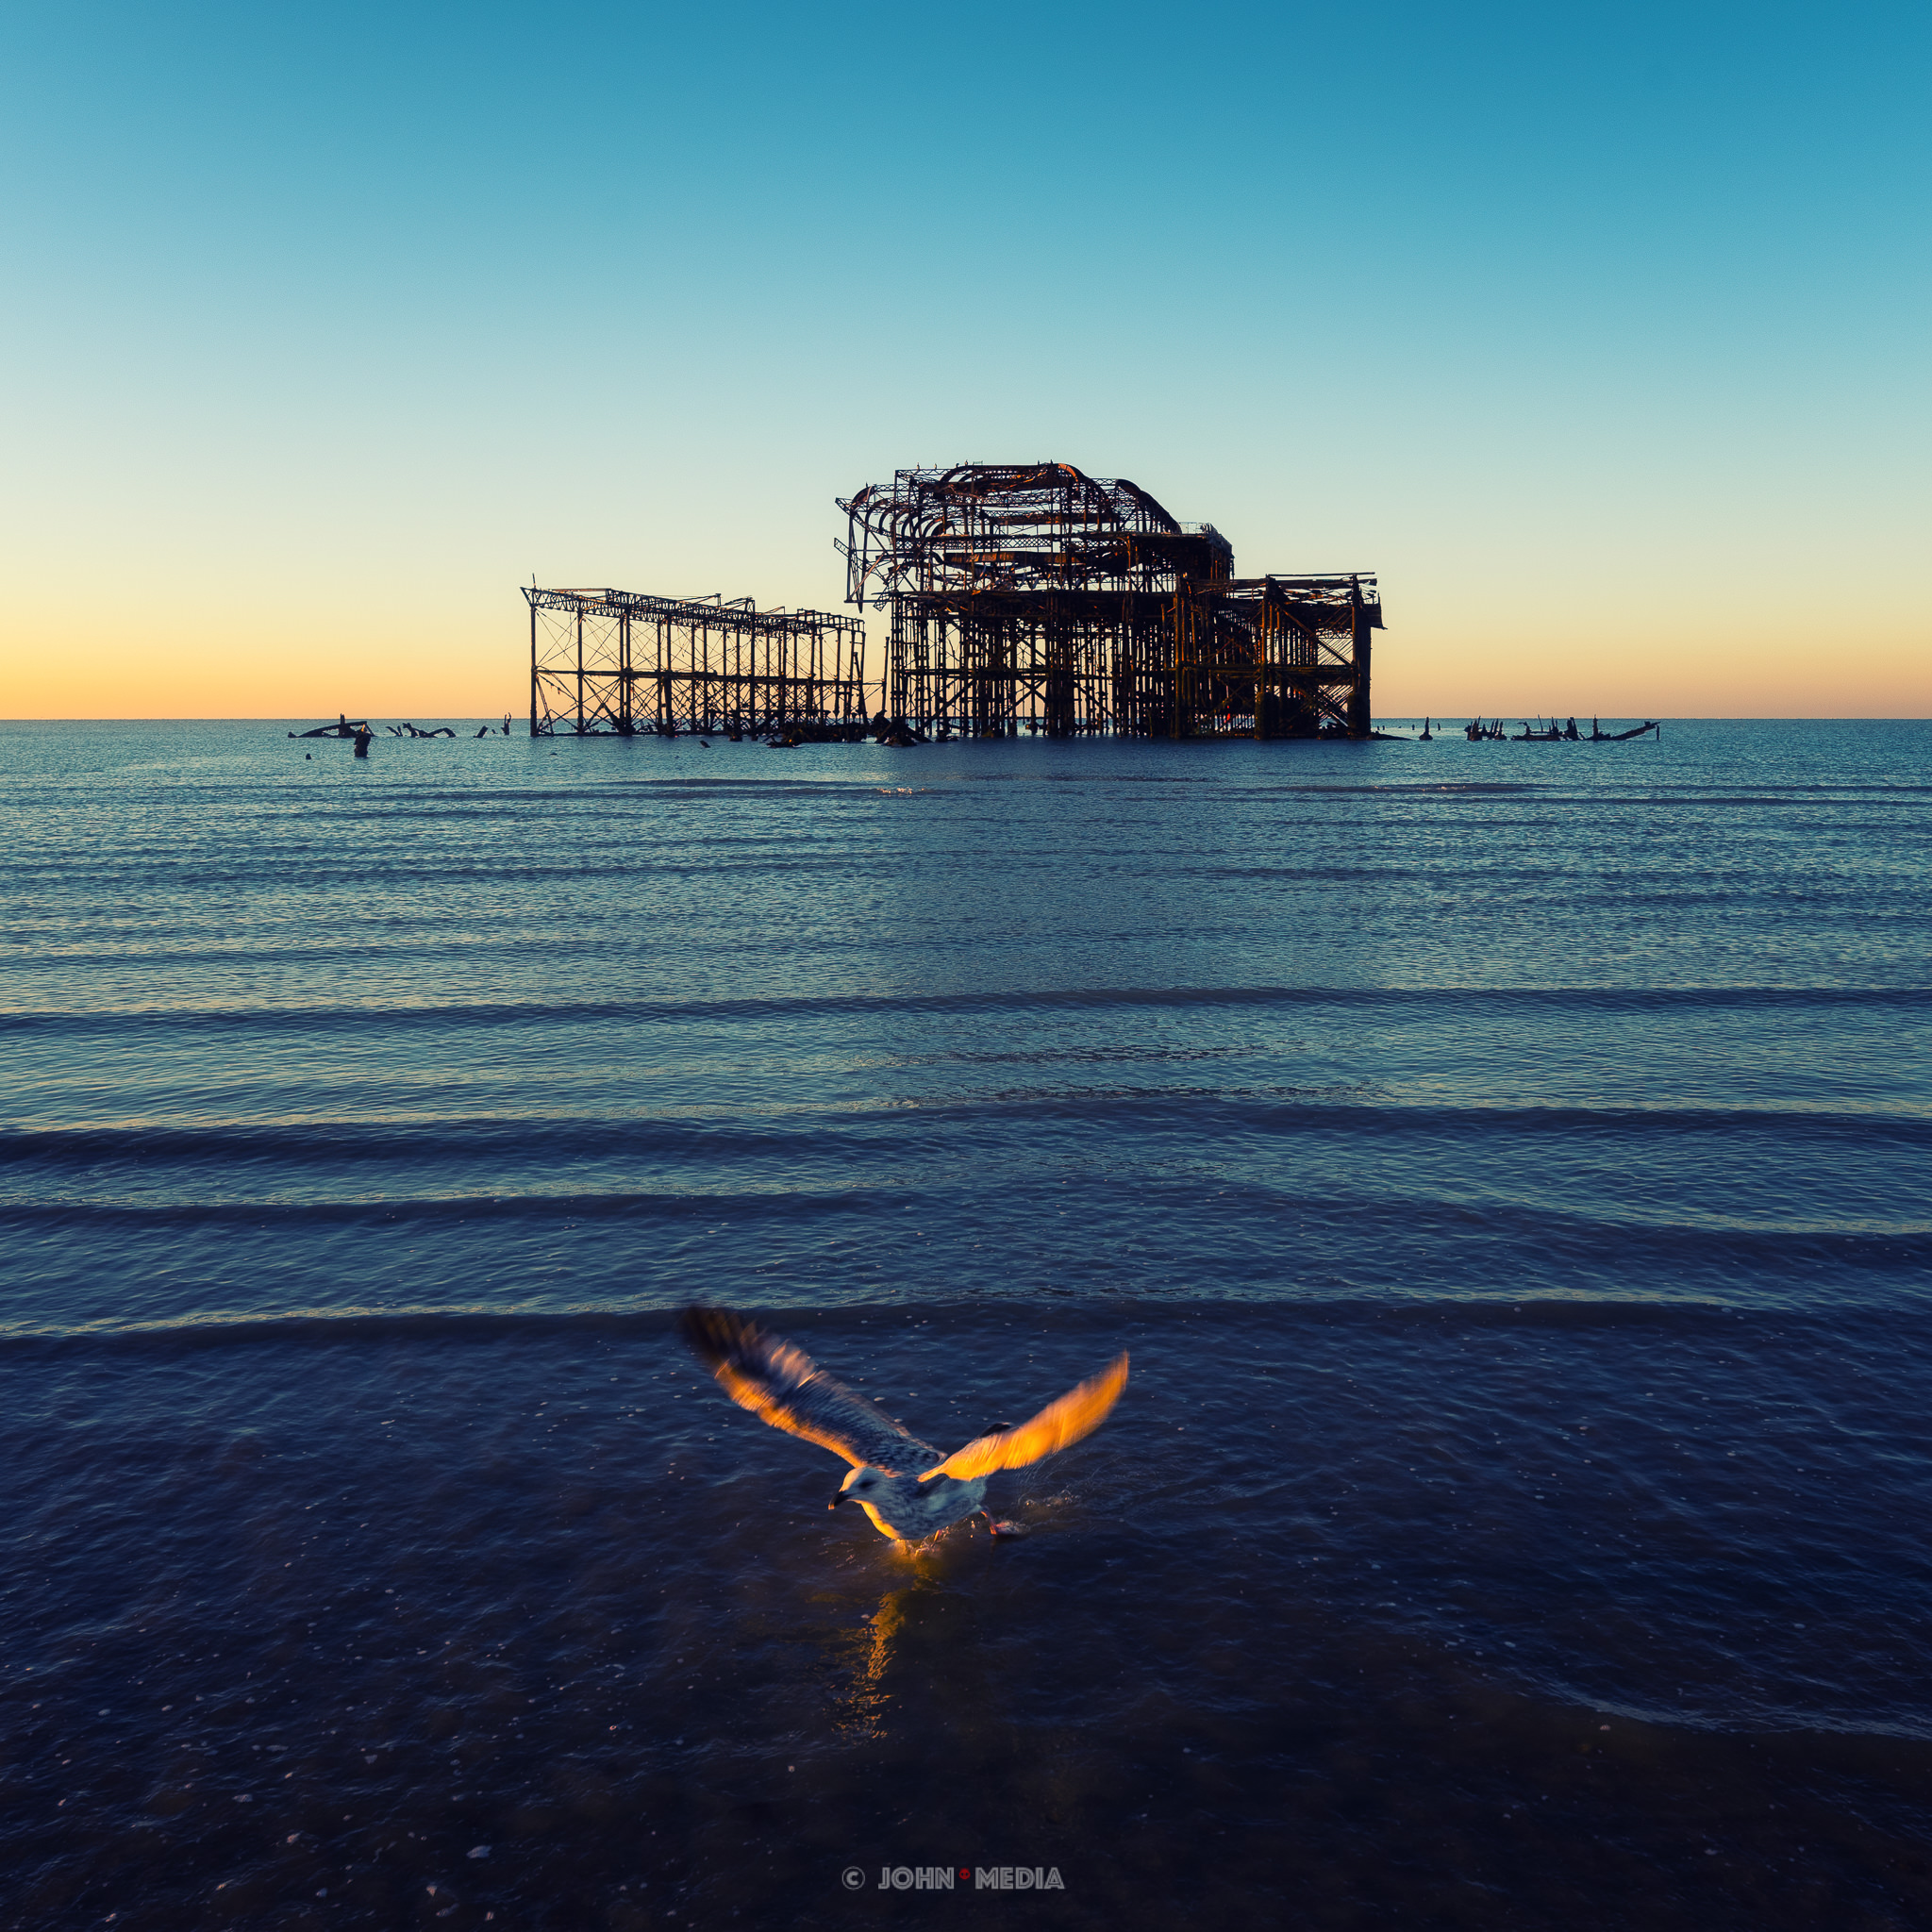 Brighton West Pier and the gull